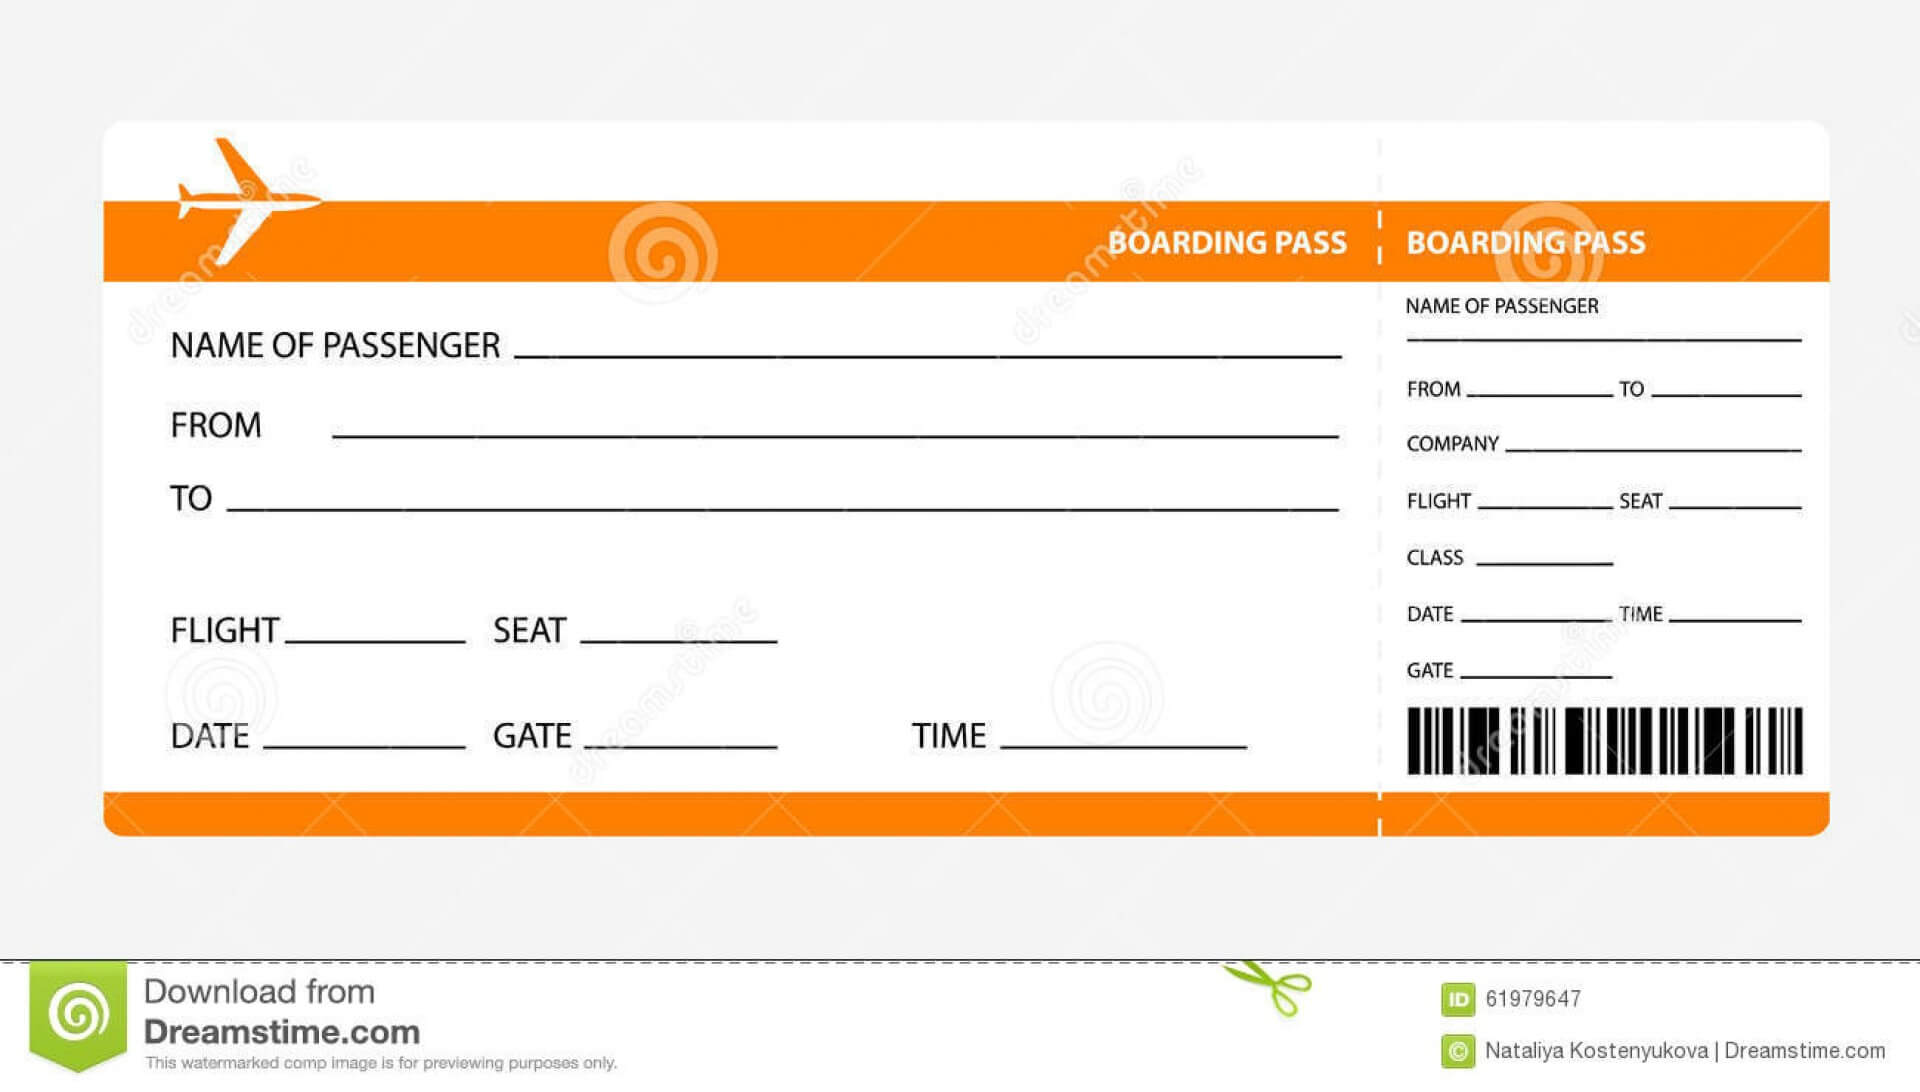 001 Free Plane Ticket Template Word Ideas Awesome Airline For Plane Ticket Template Word